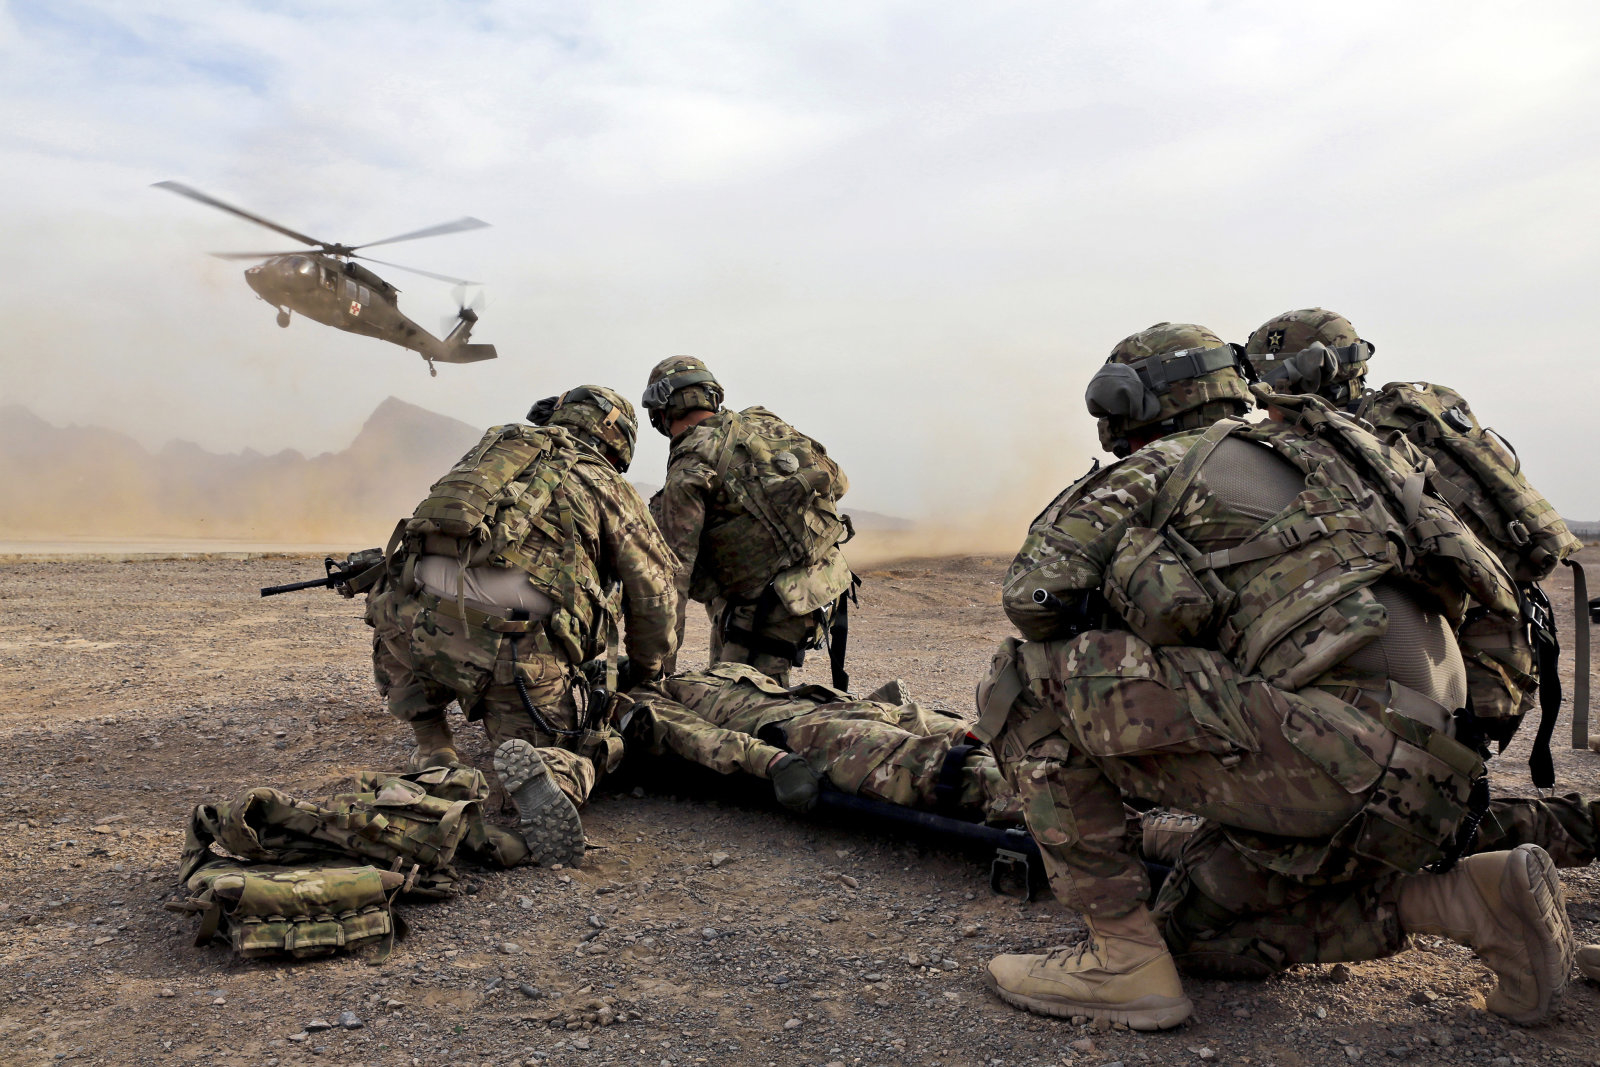 January 9, 2013 - Security force team members for Provincial Reconstruction Team (PRT) Farah wait for a UH-60 Blackhawk medevac helicopter to land before moving a simulated casualty during medical evacuation training on FOB Farah, Afghanistan. =